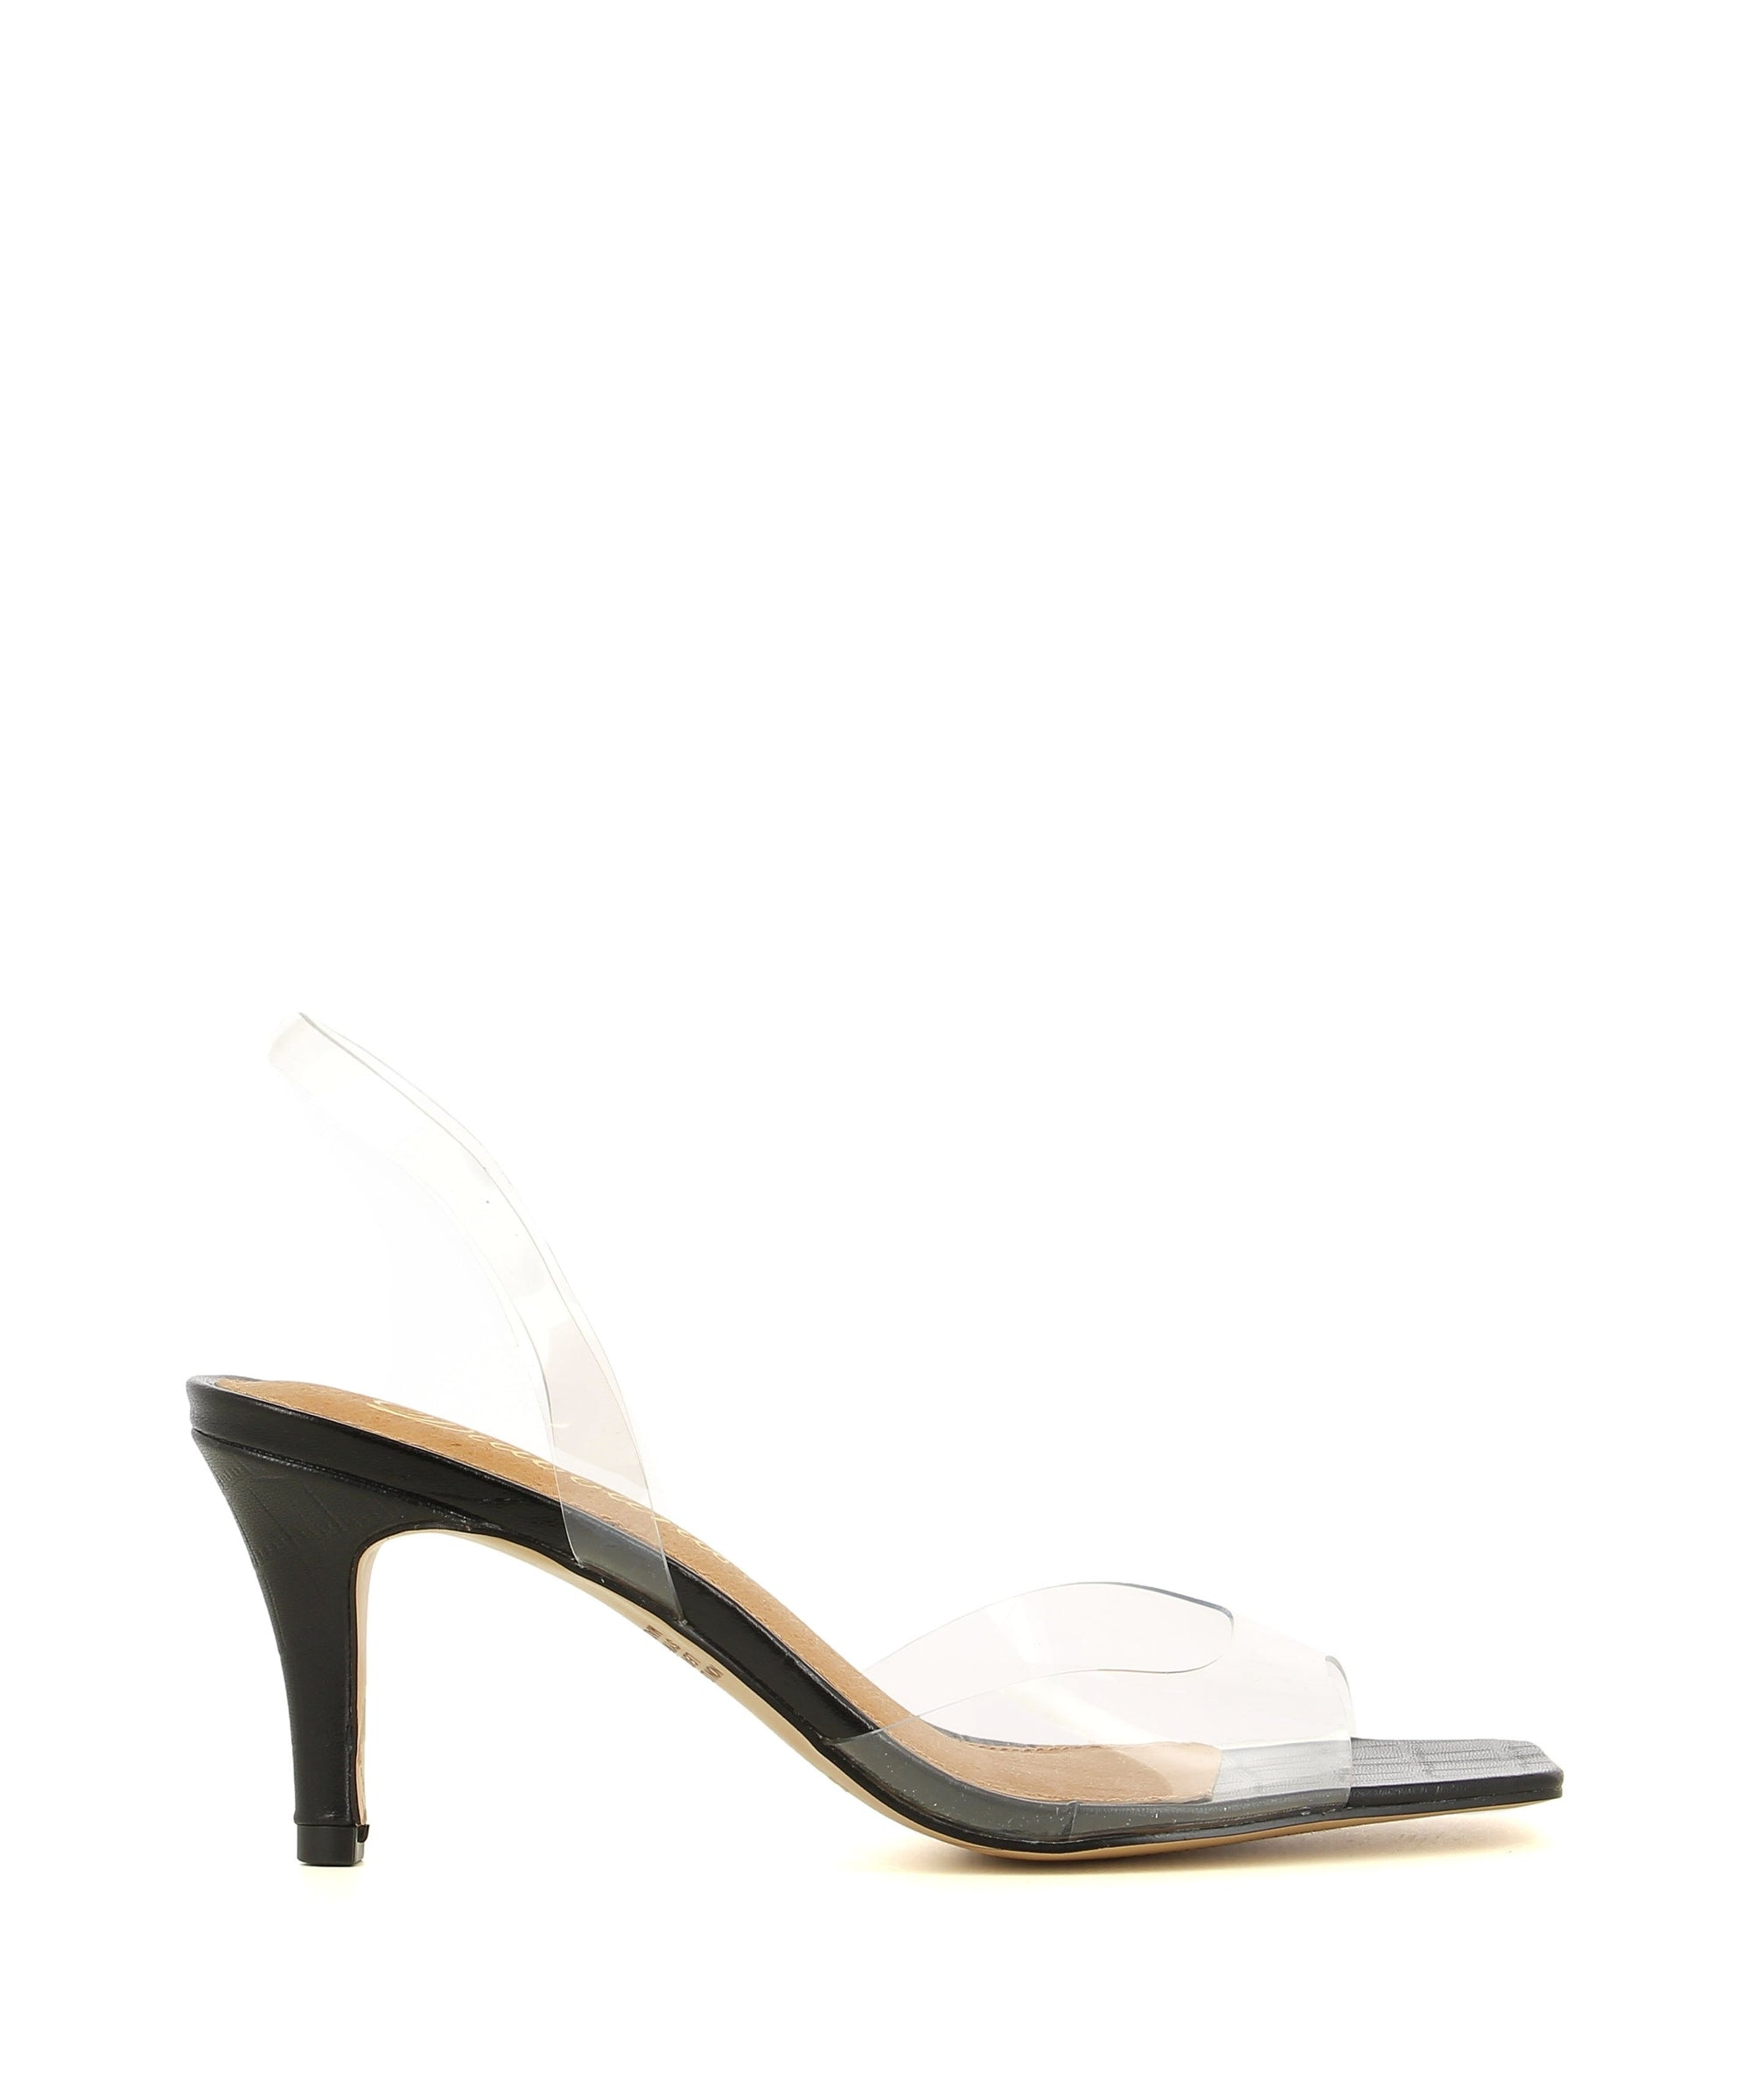 A chic and simple sling back heel by Diavolina. The 'Dutch' features a clear PVC upper, croc print sole, square toe and a black leather stiletto heel.